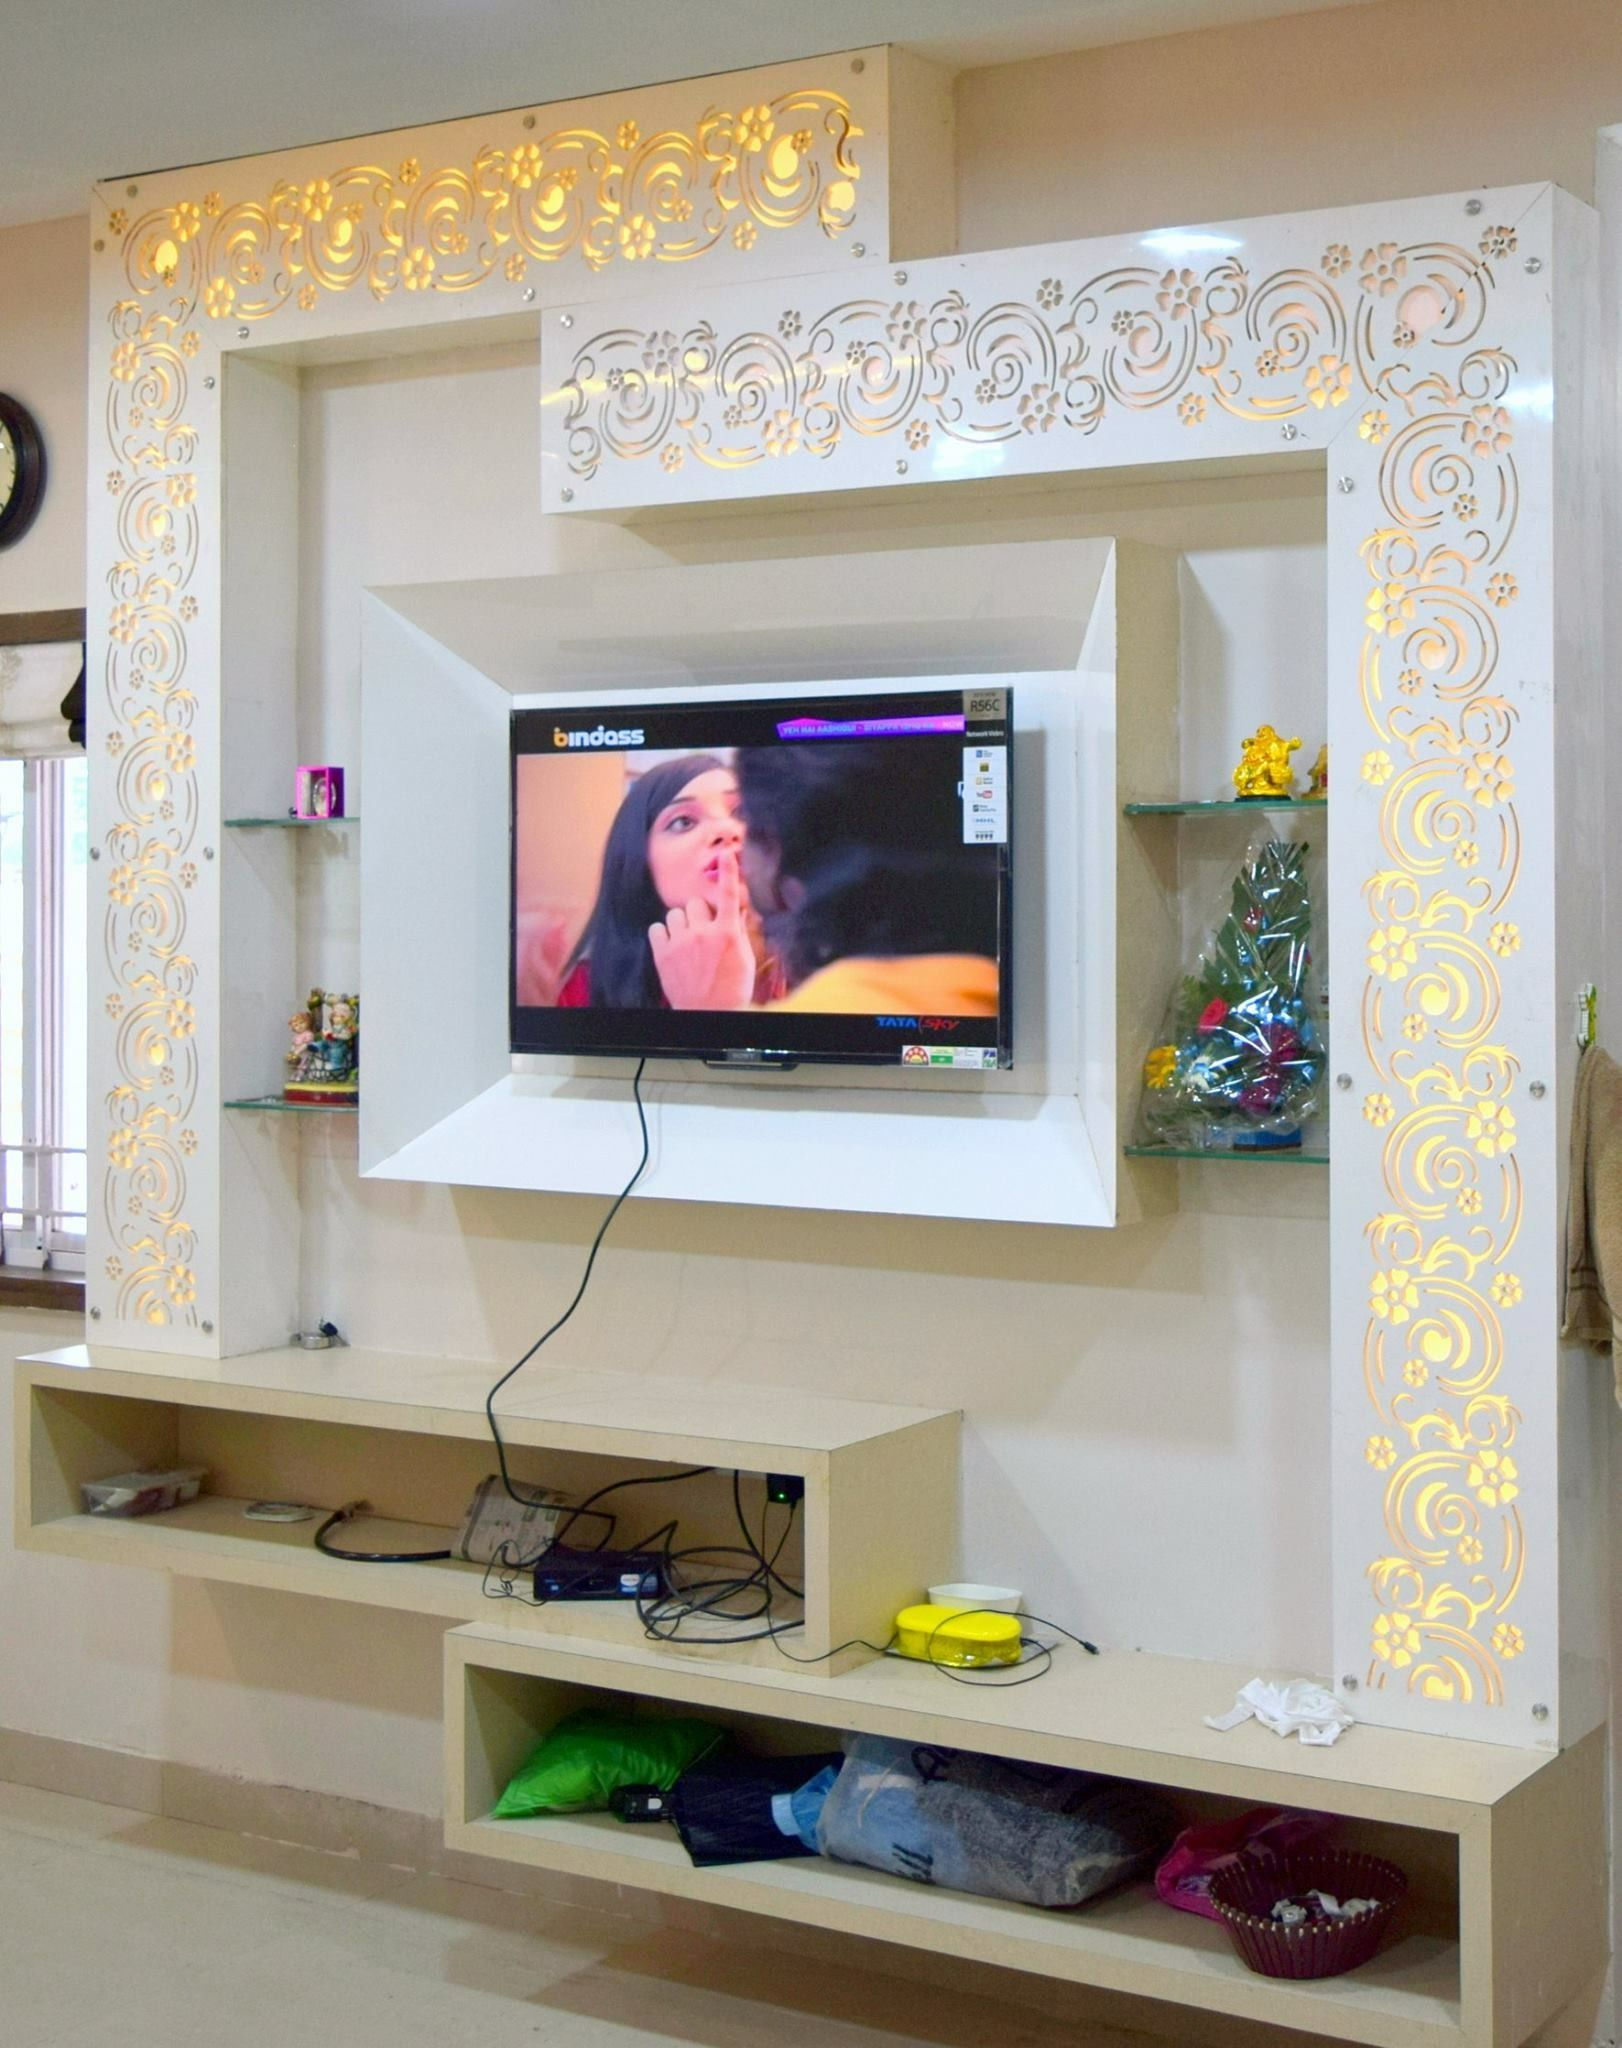 Latest Tv Unit Design: Tv Wall Design, Ceiling Design